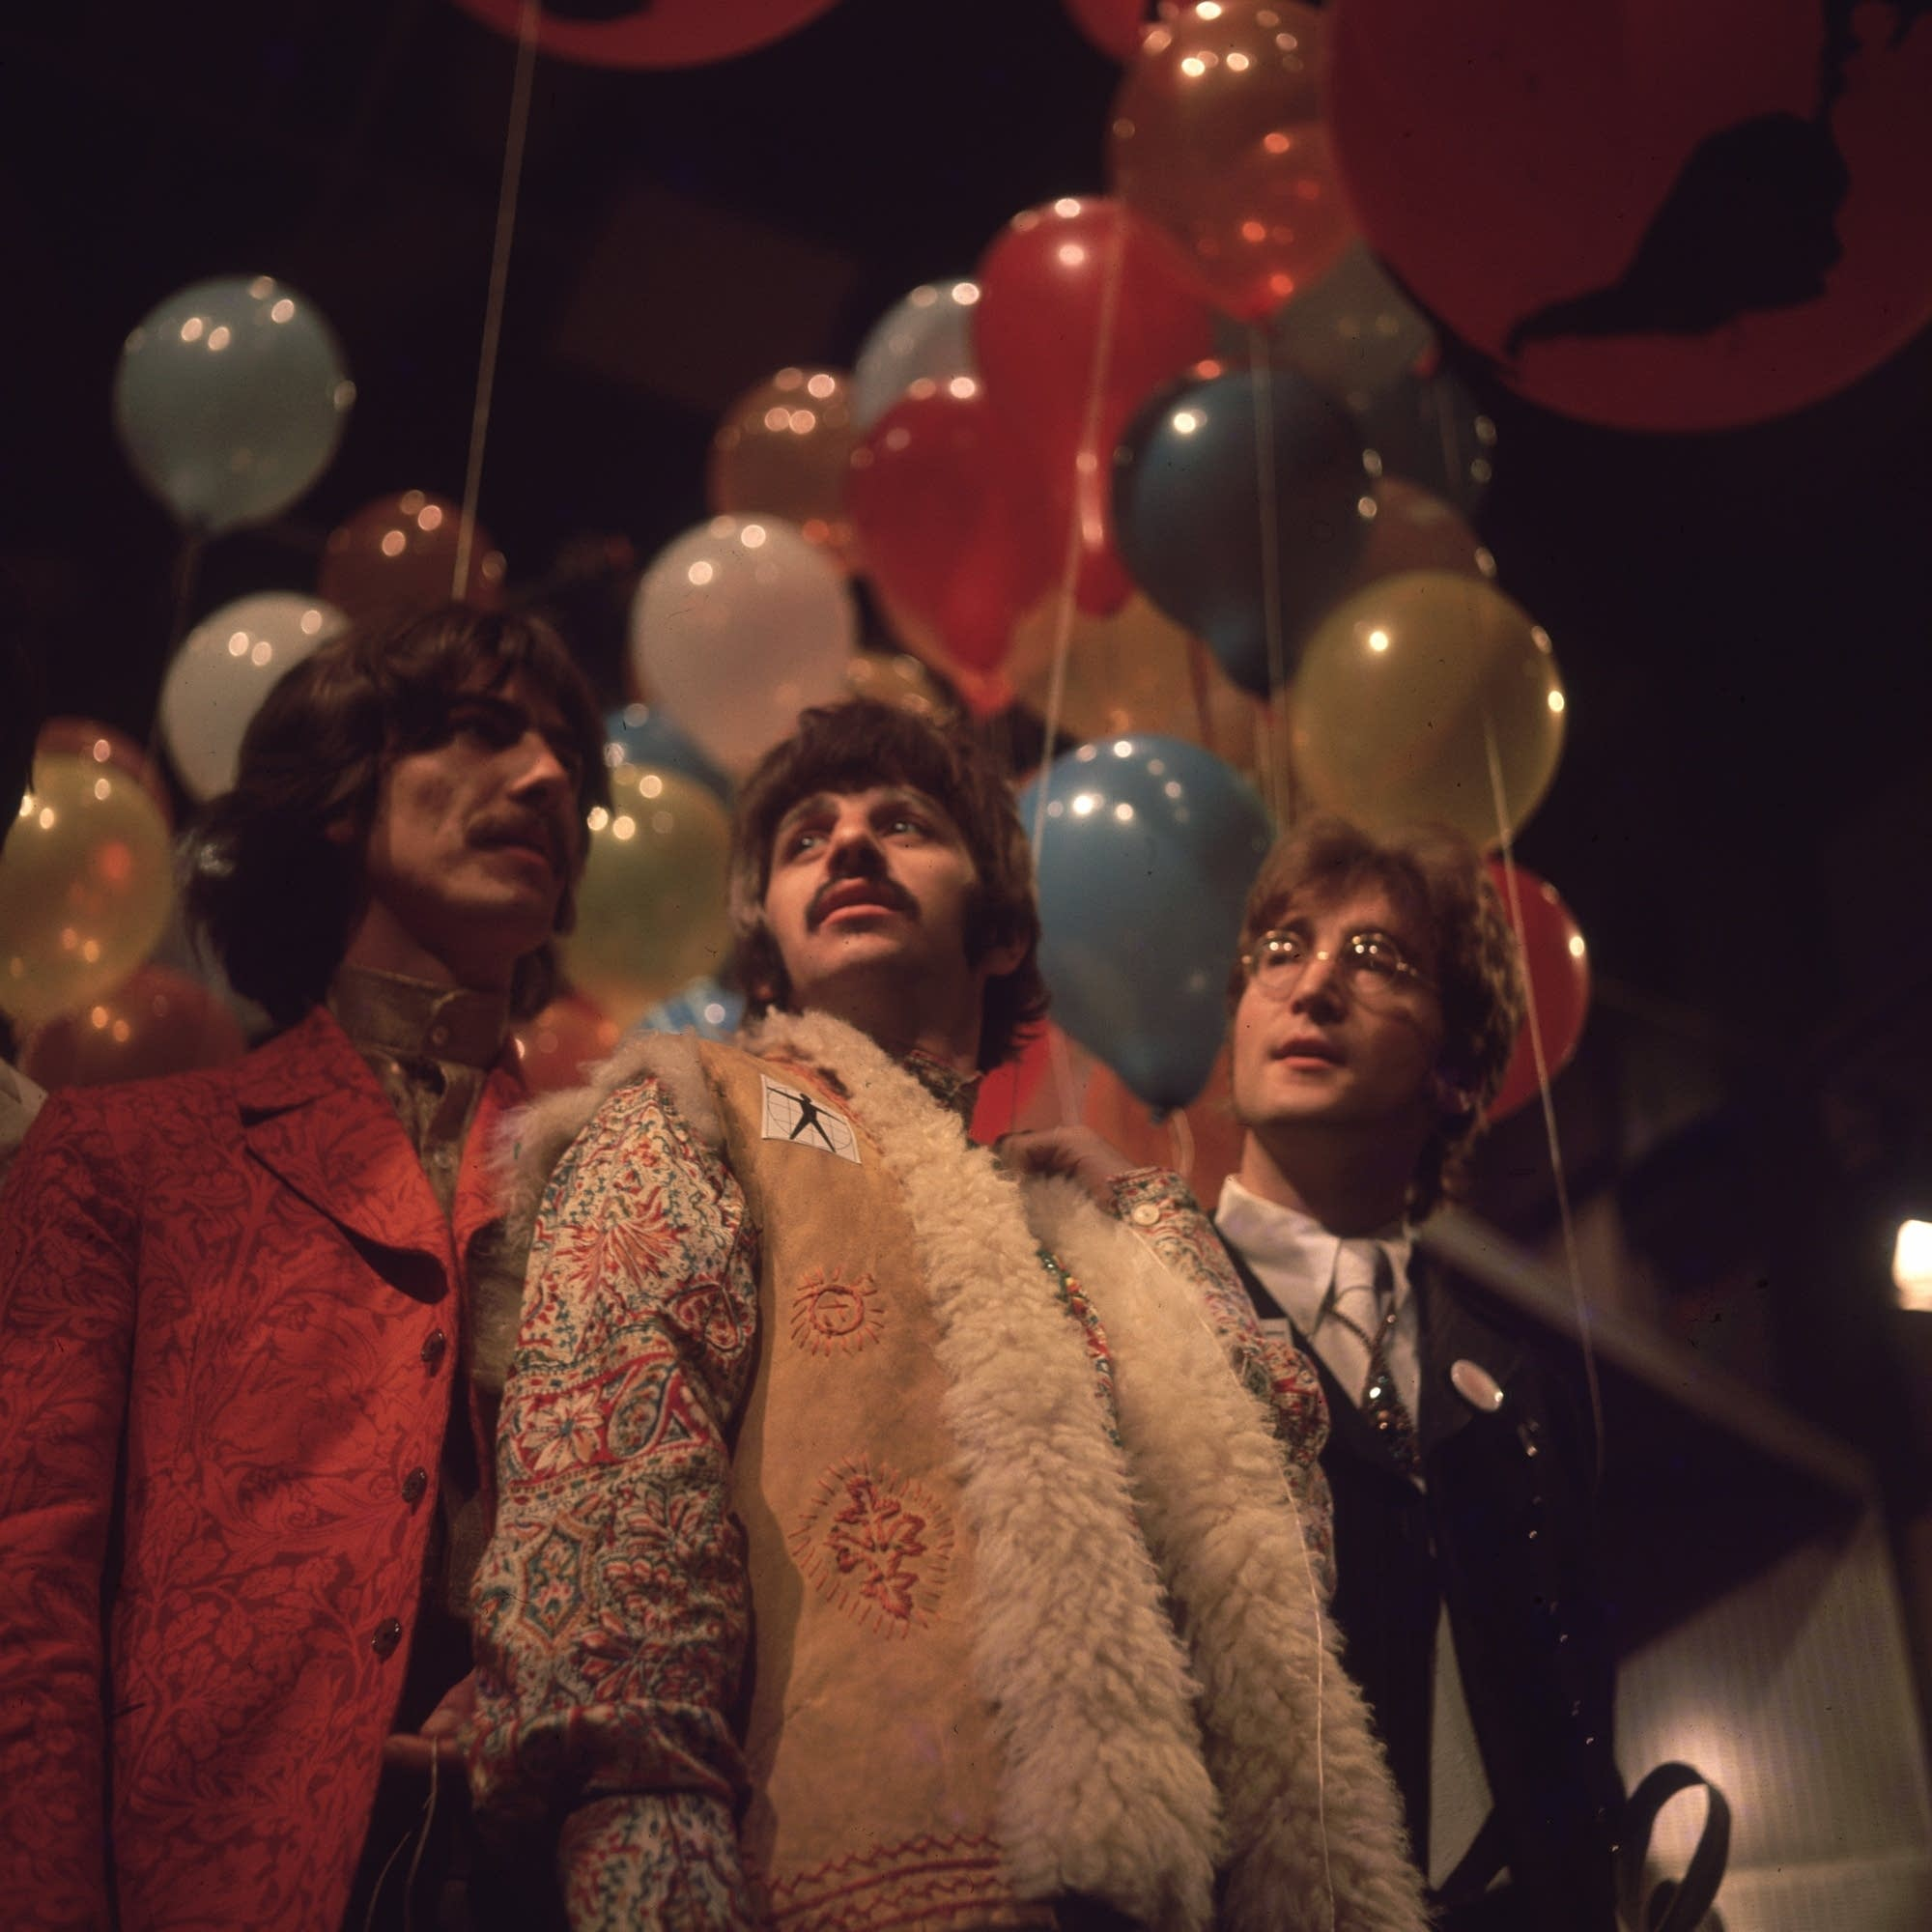 The Beatles at Abbey Road in 1967.